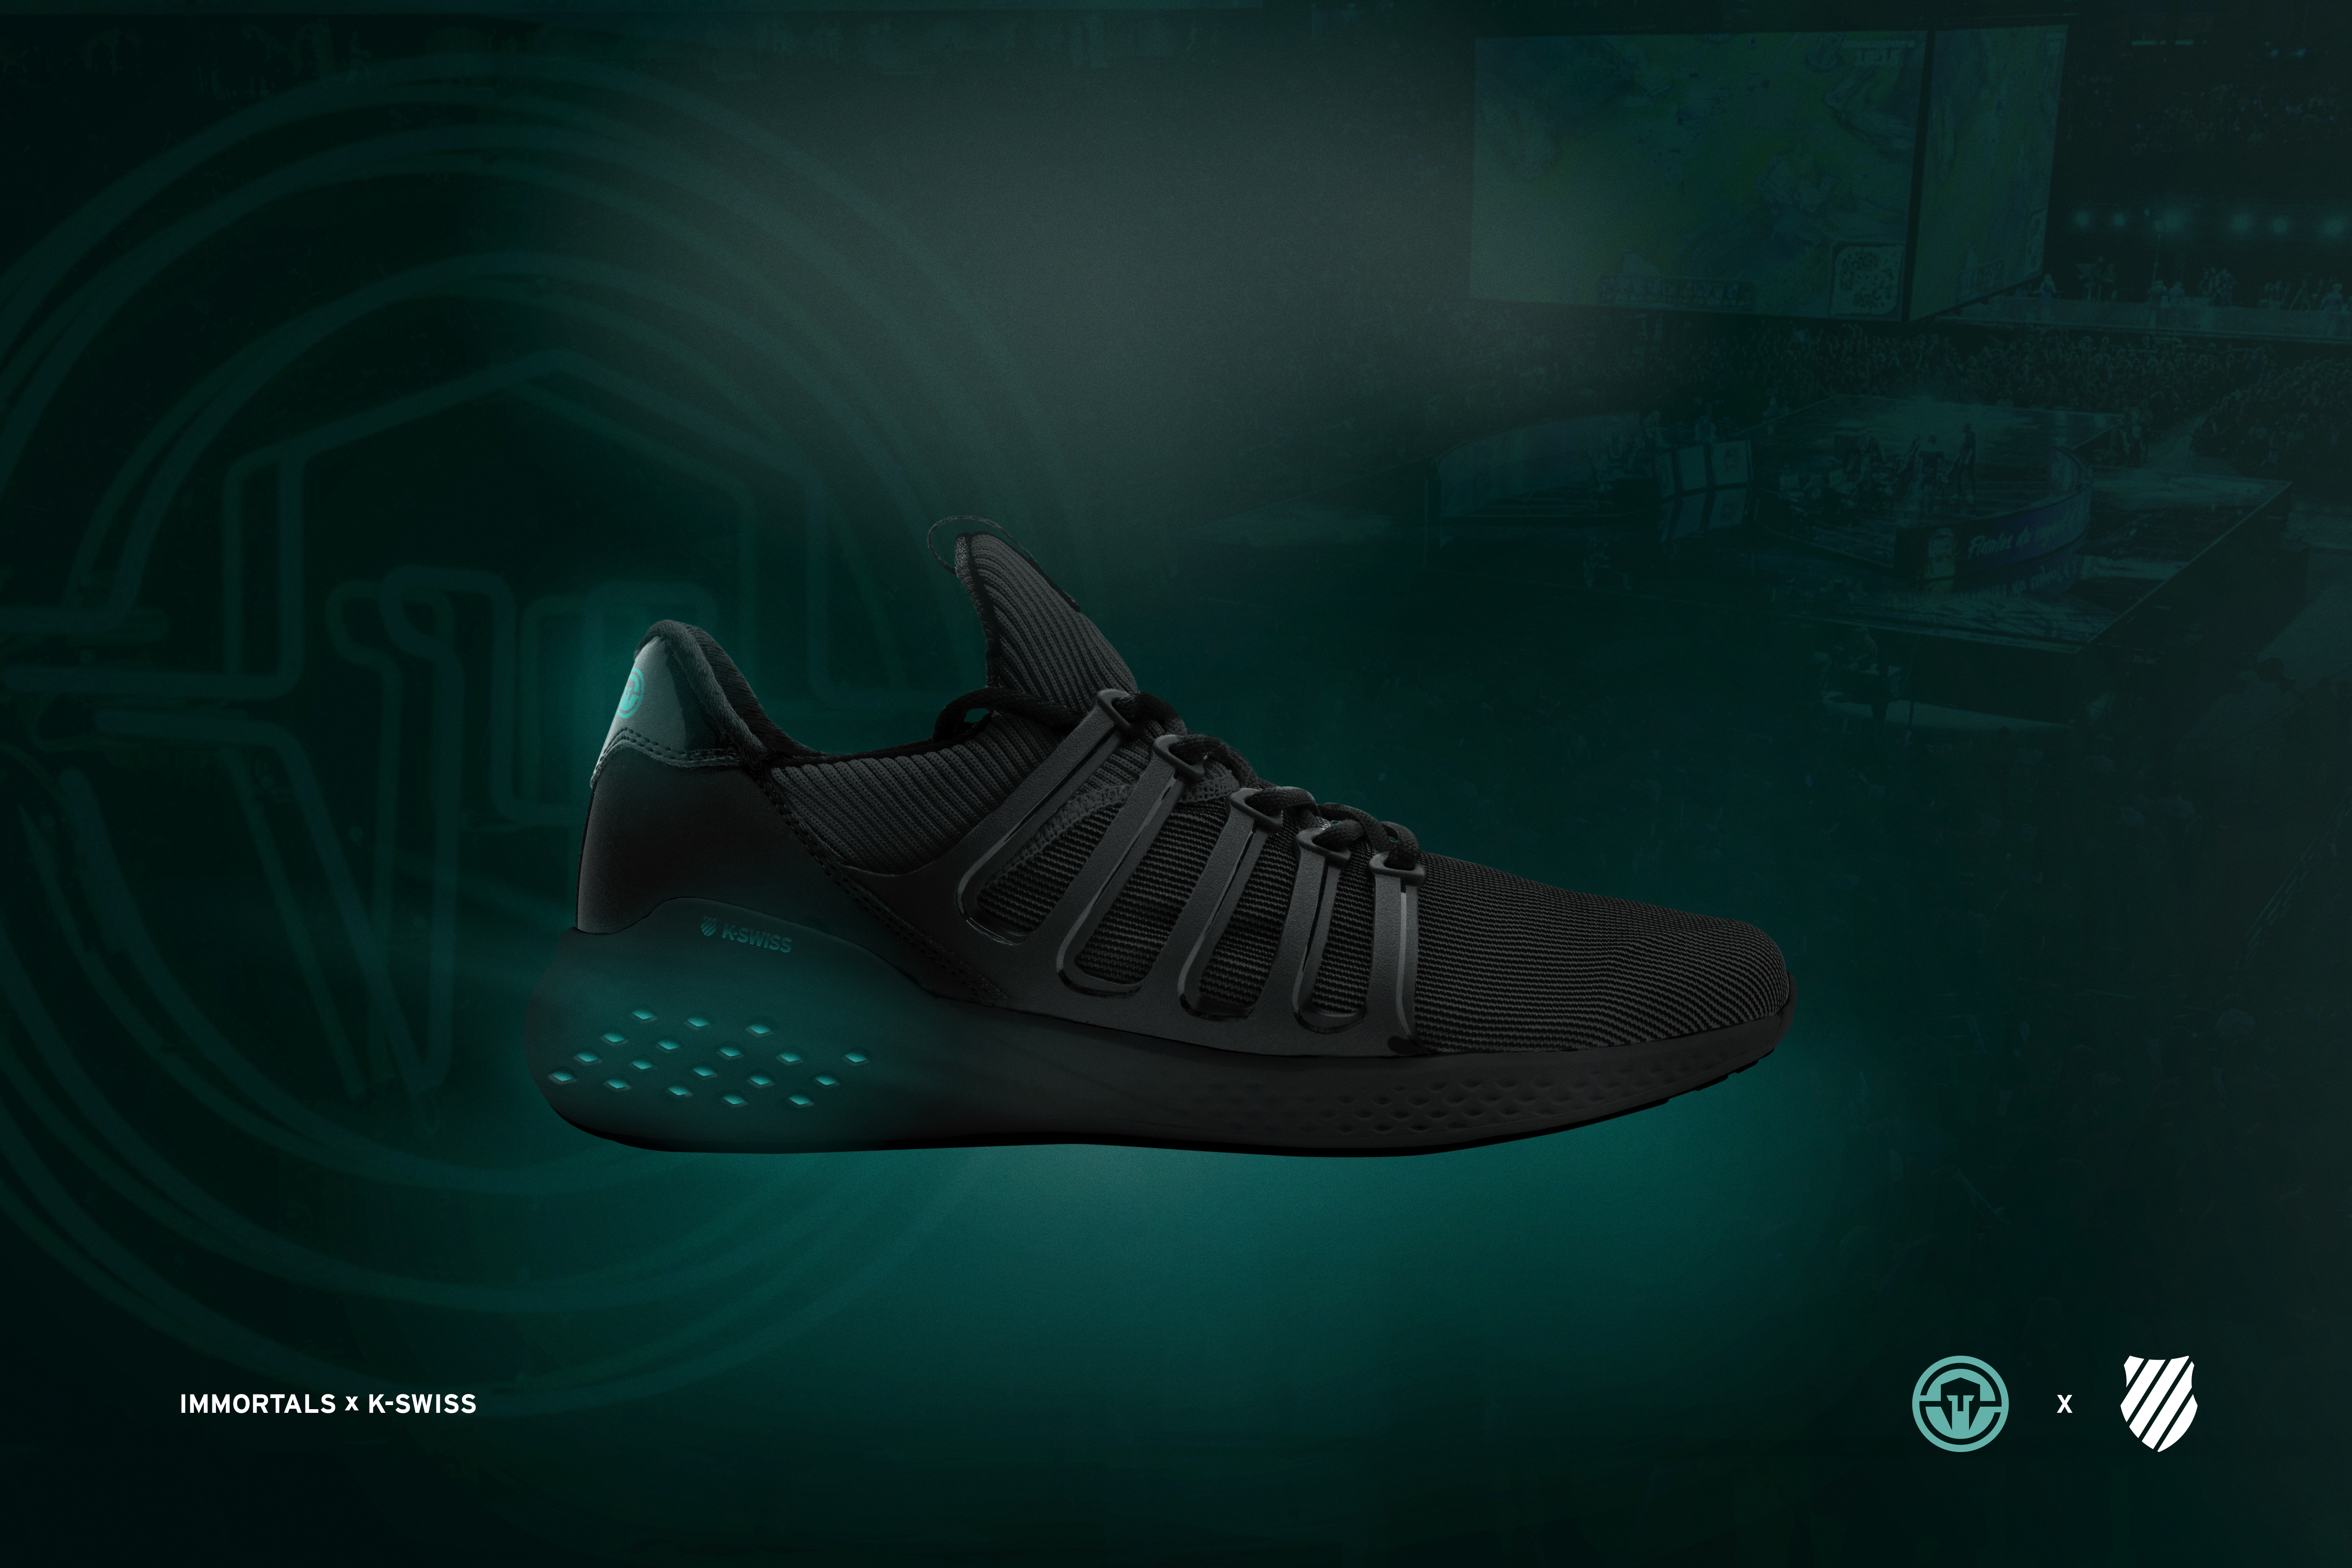 K-Swiss and the Immortals esports team collaborated on custom sneakers.